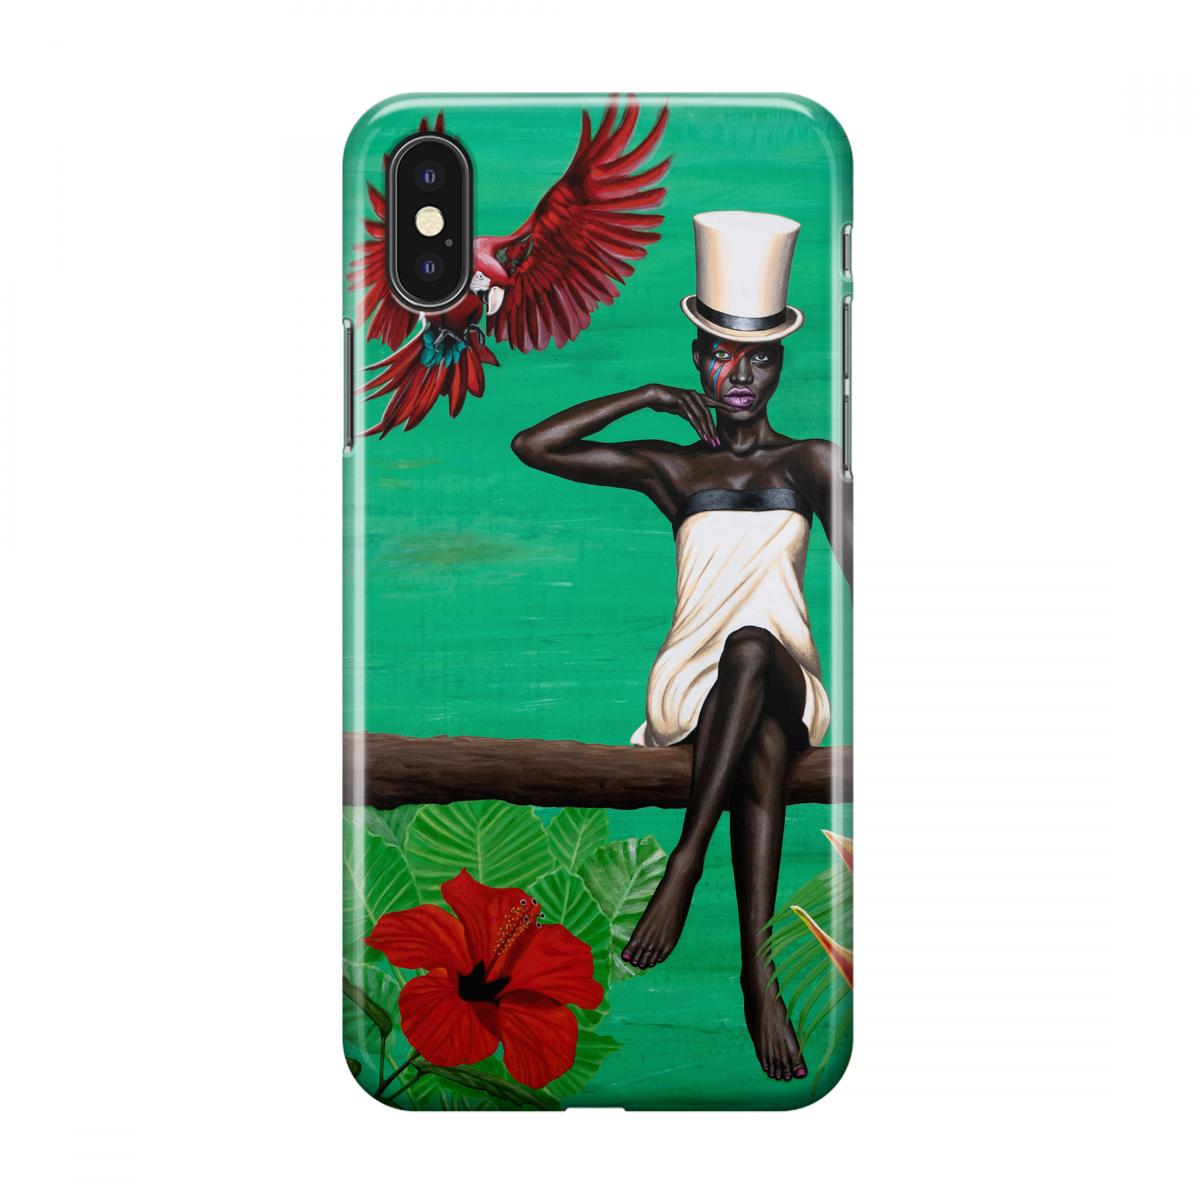 Christian Beijer Phone case Soul rebel - Christian Beijer Arts